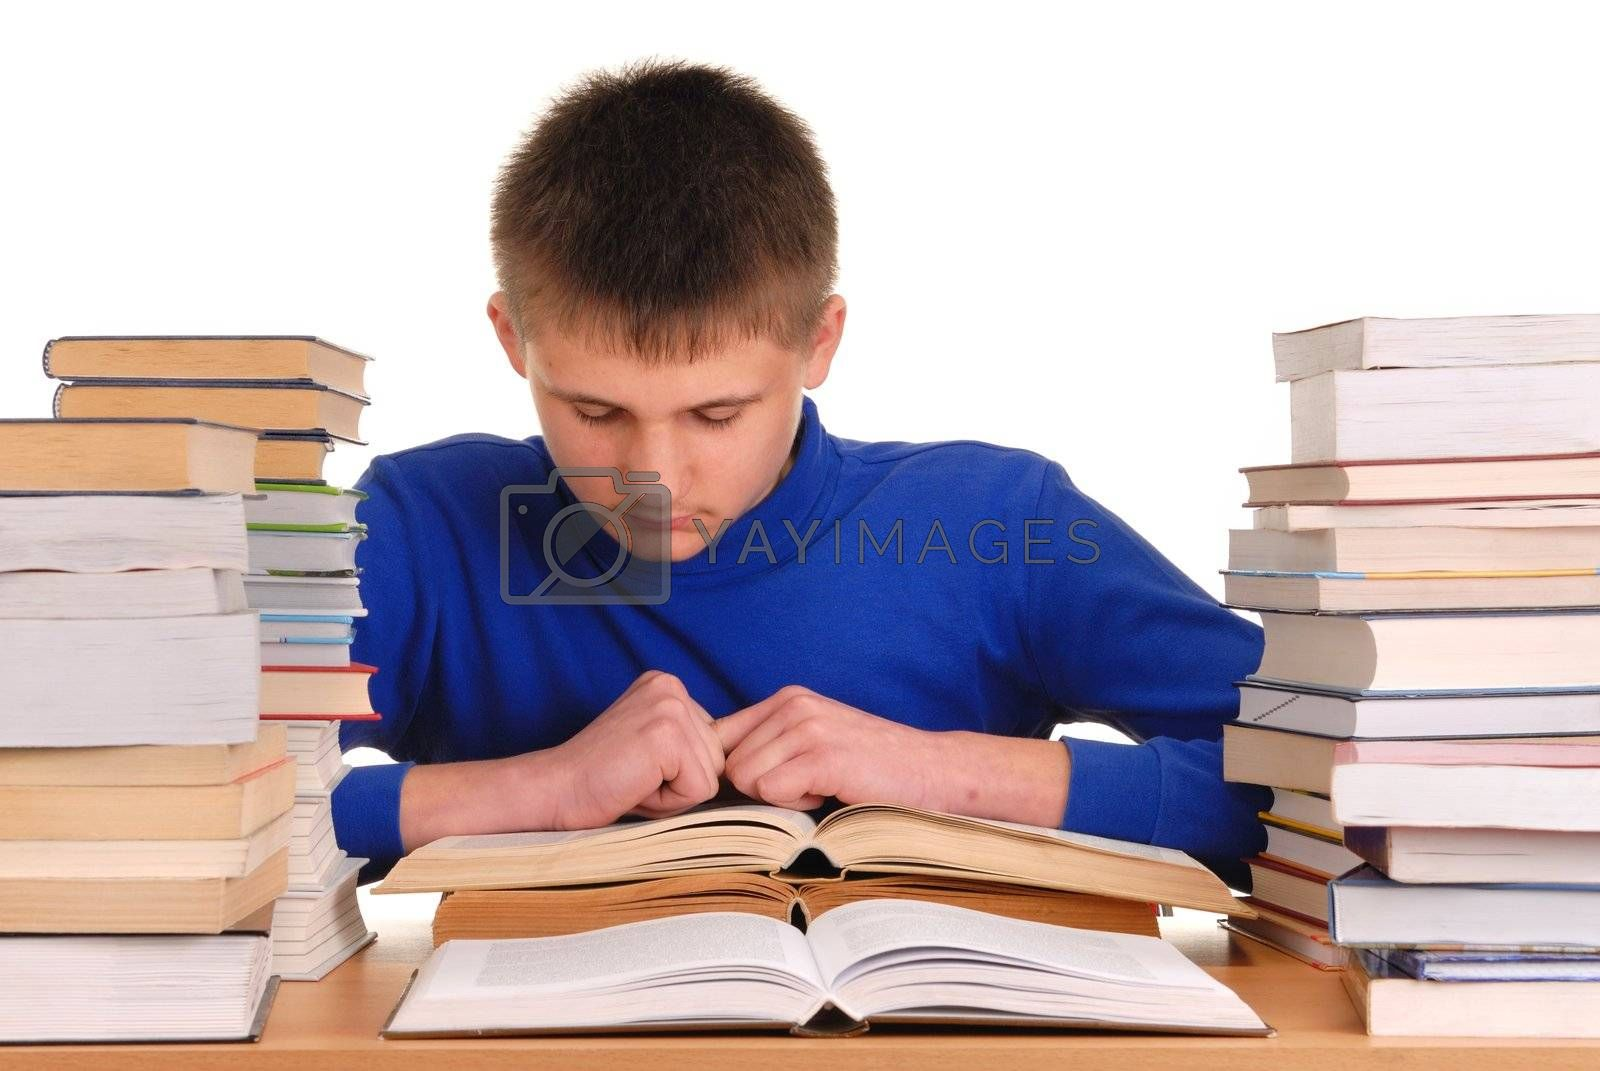 Teenager reading books, isolated on white